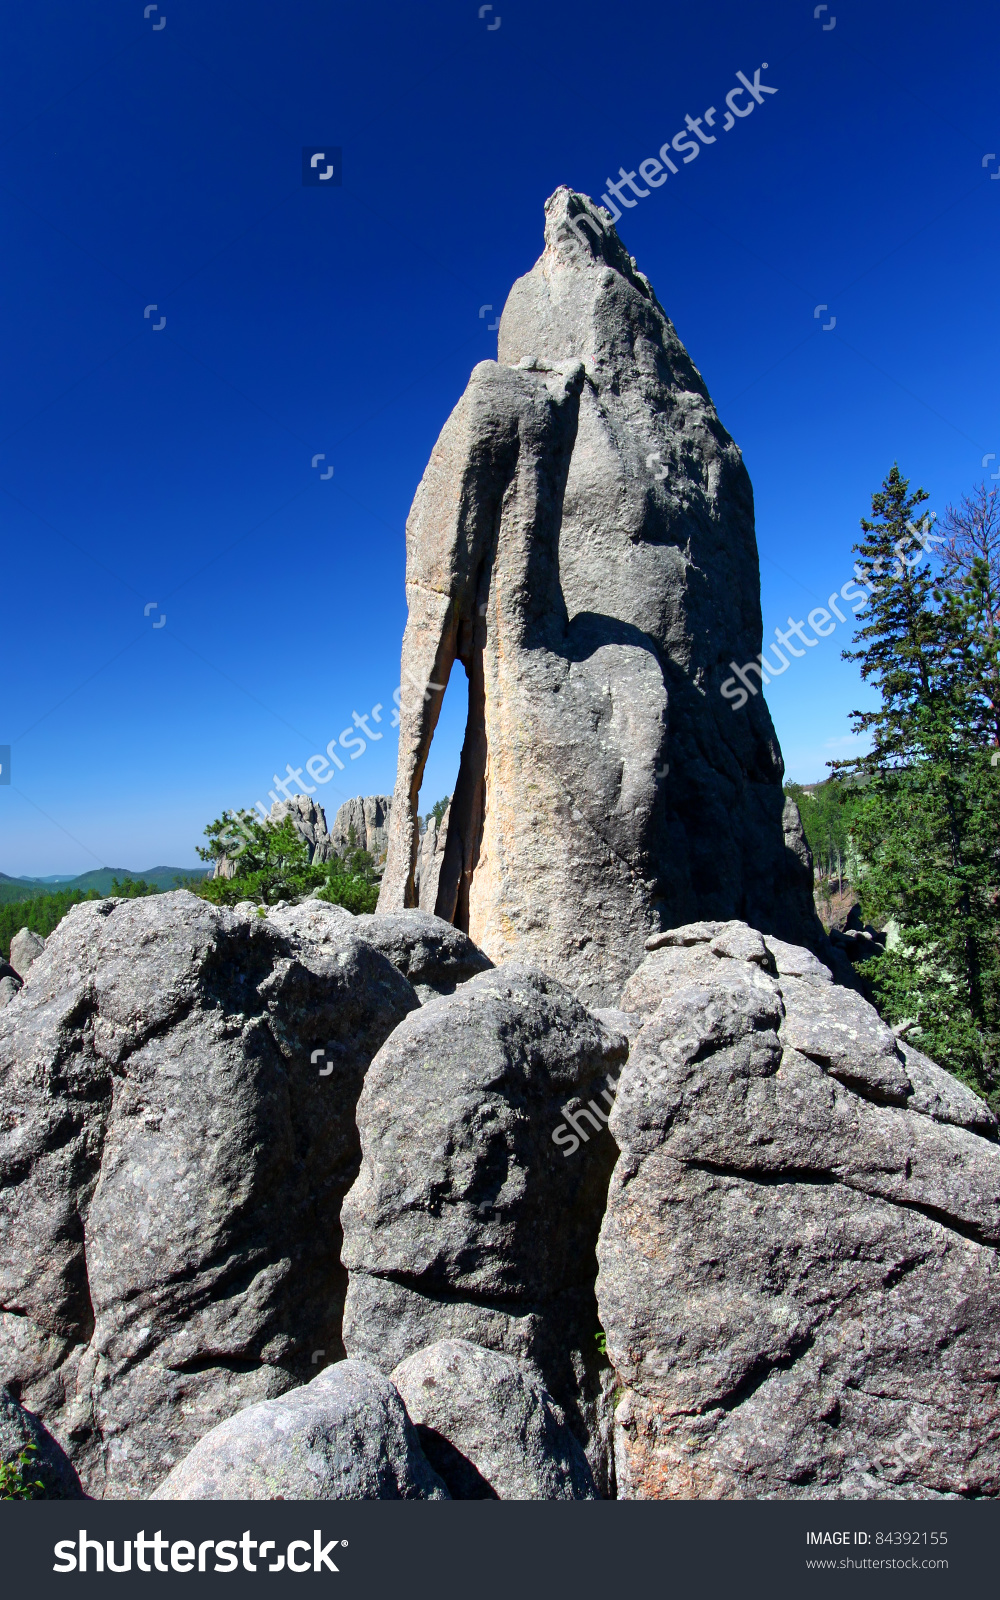 Needles Eye Rock Formation In Custer State Park Of South Dakota.